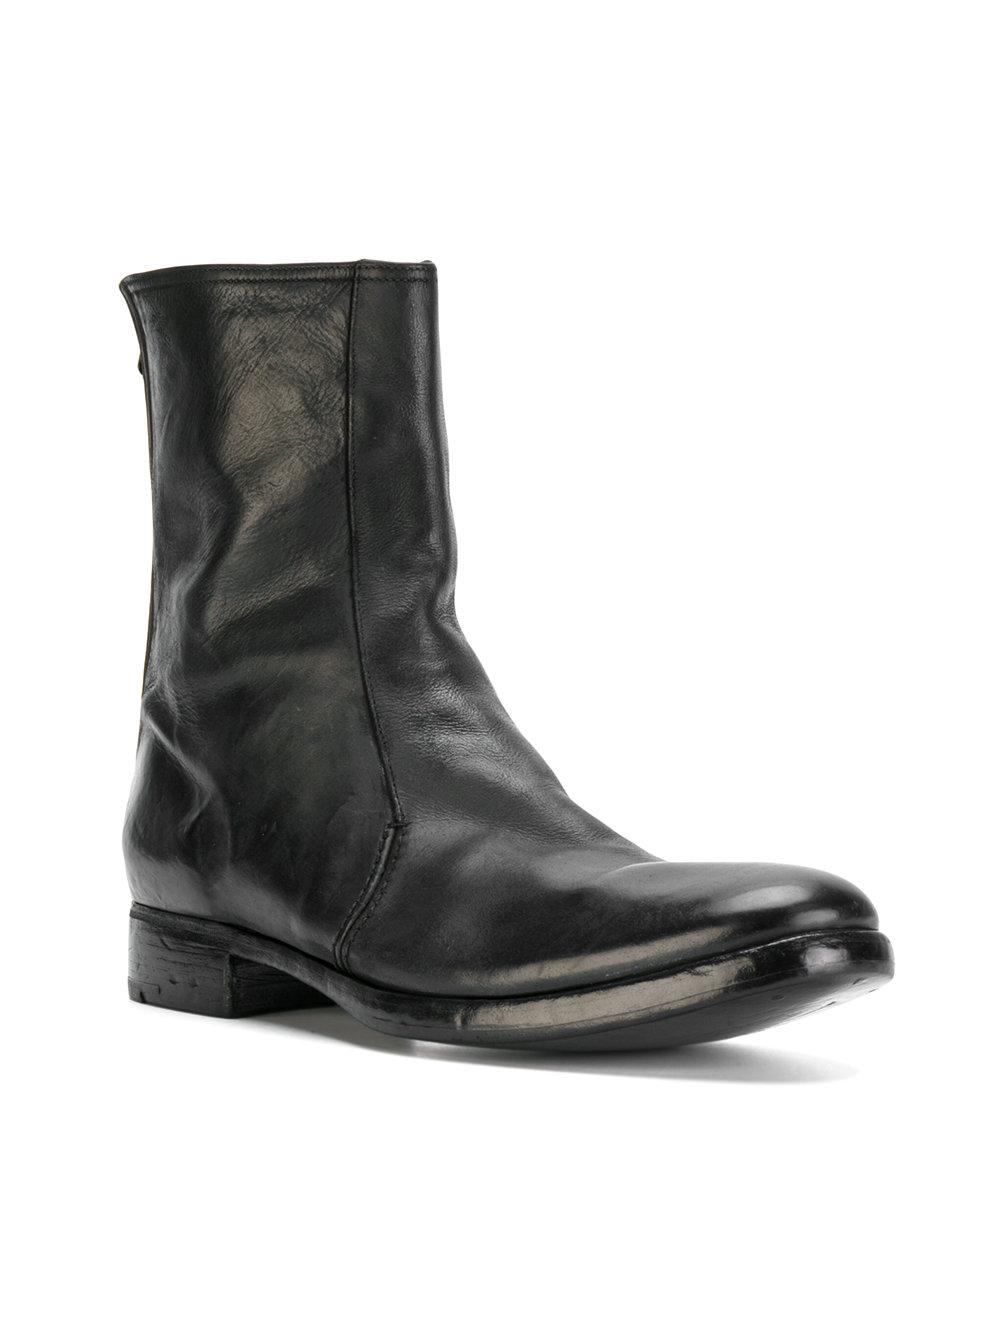 Premiata Leather Distressed Ankle Boots In Black For Men